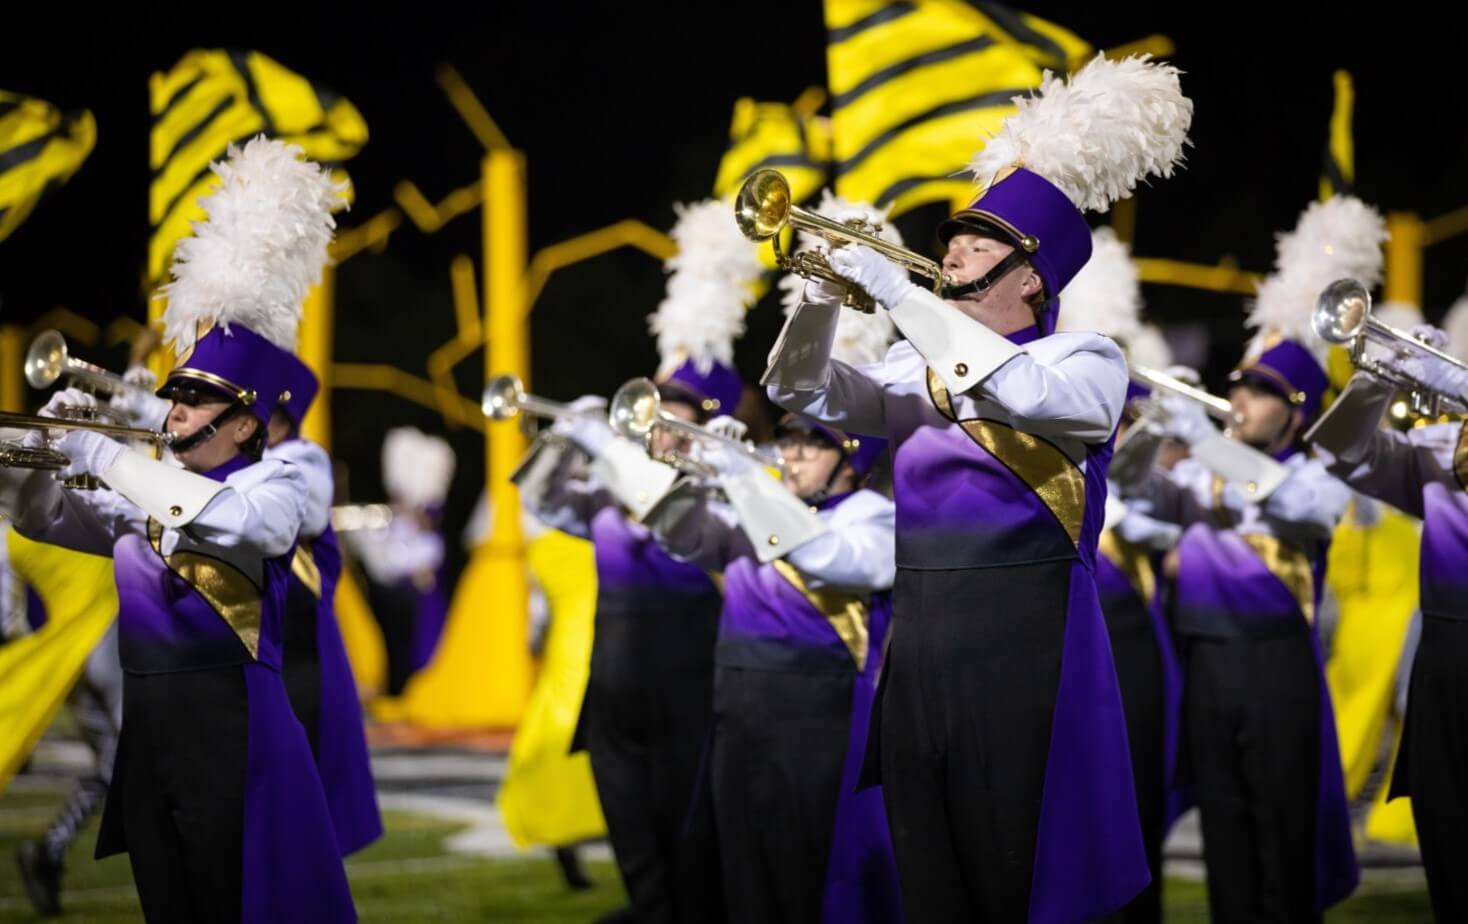 WCU's Marching Band Earns 'Heisman Trophy of the Collegiate Band World'